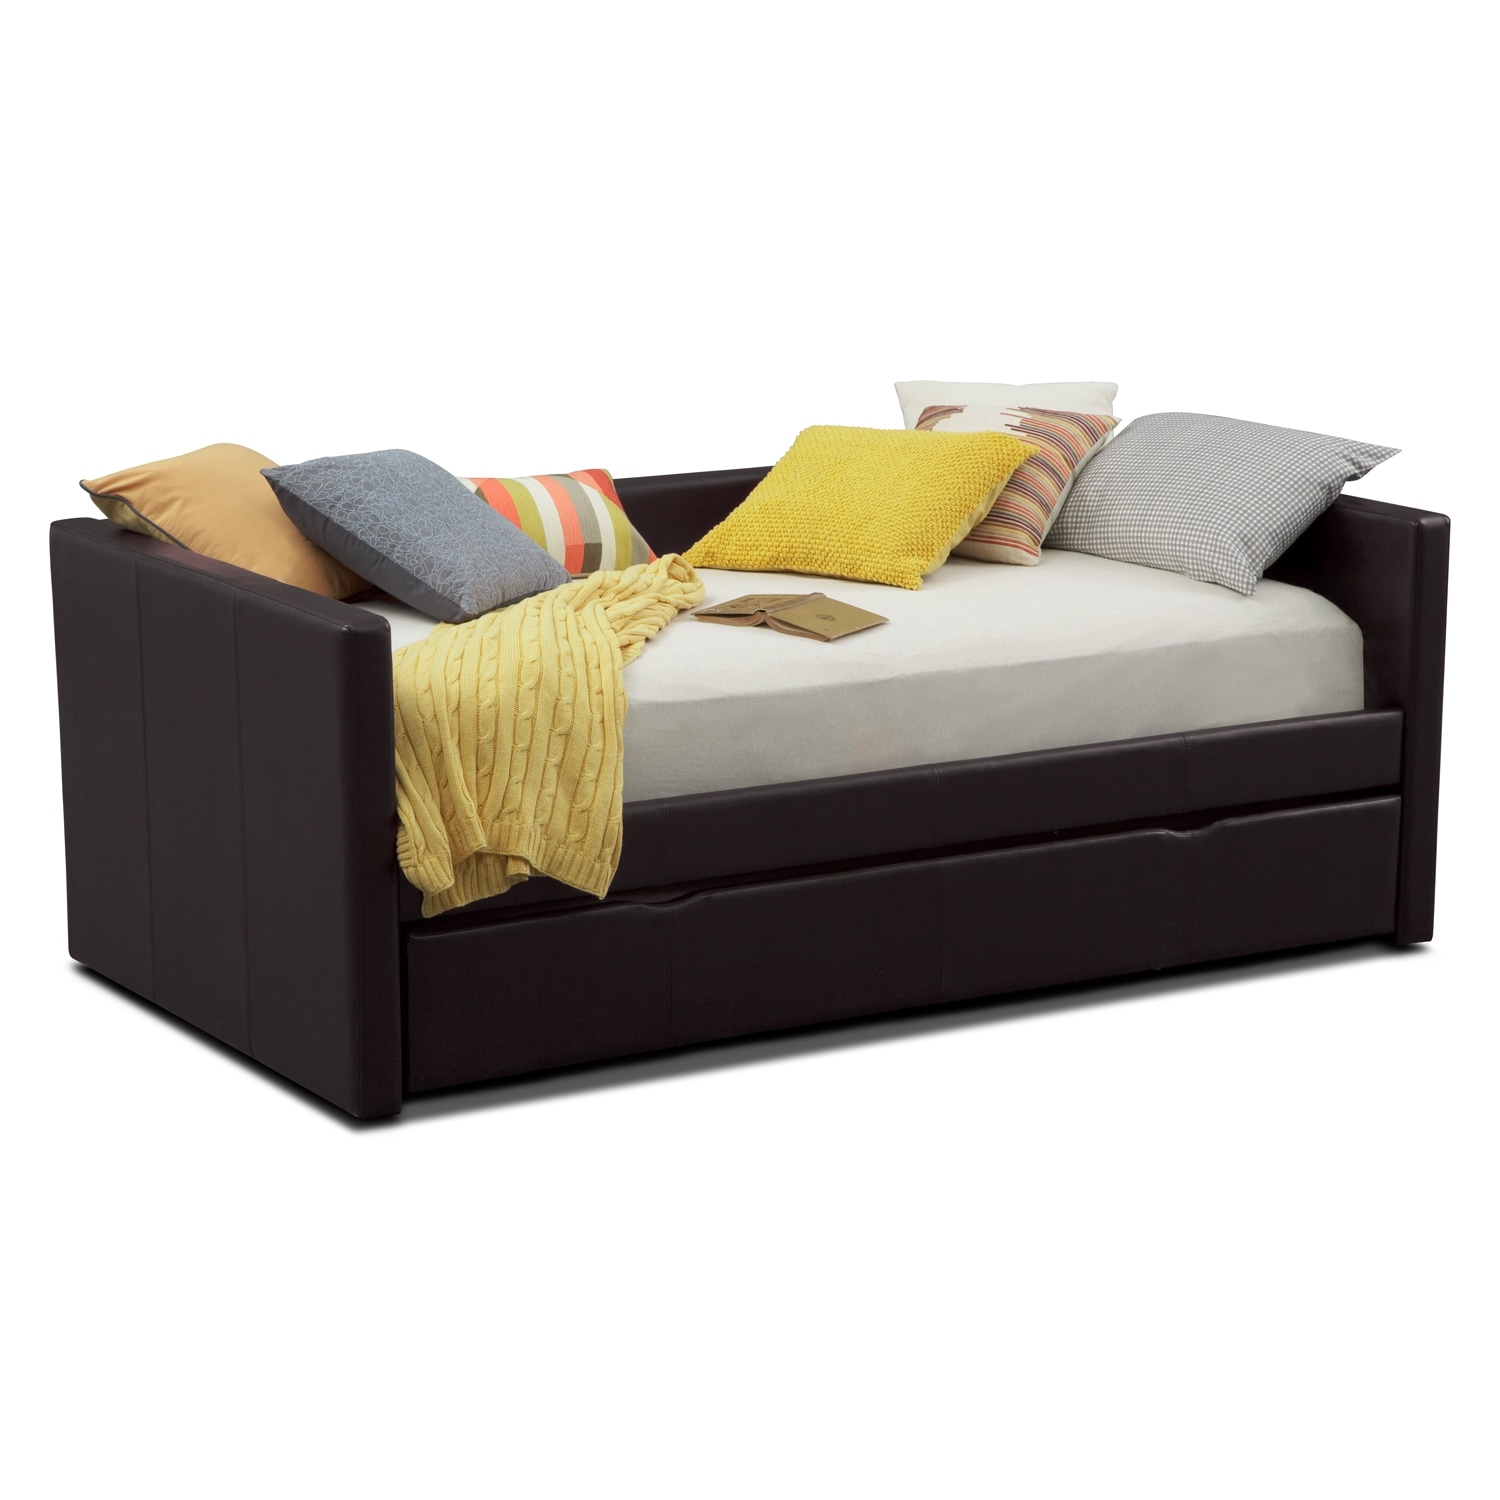 Kids Furniture - Carey Twin Daybed with Trundle - Brown